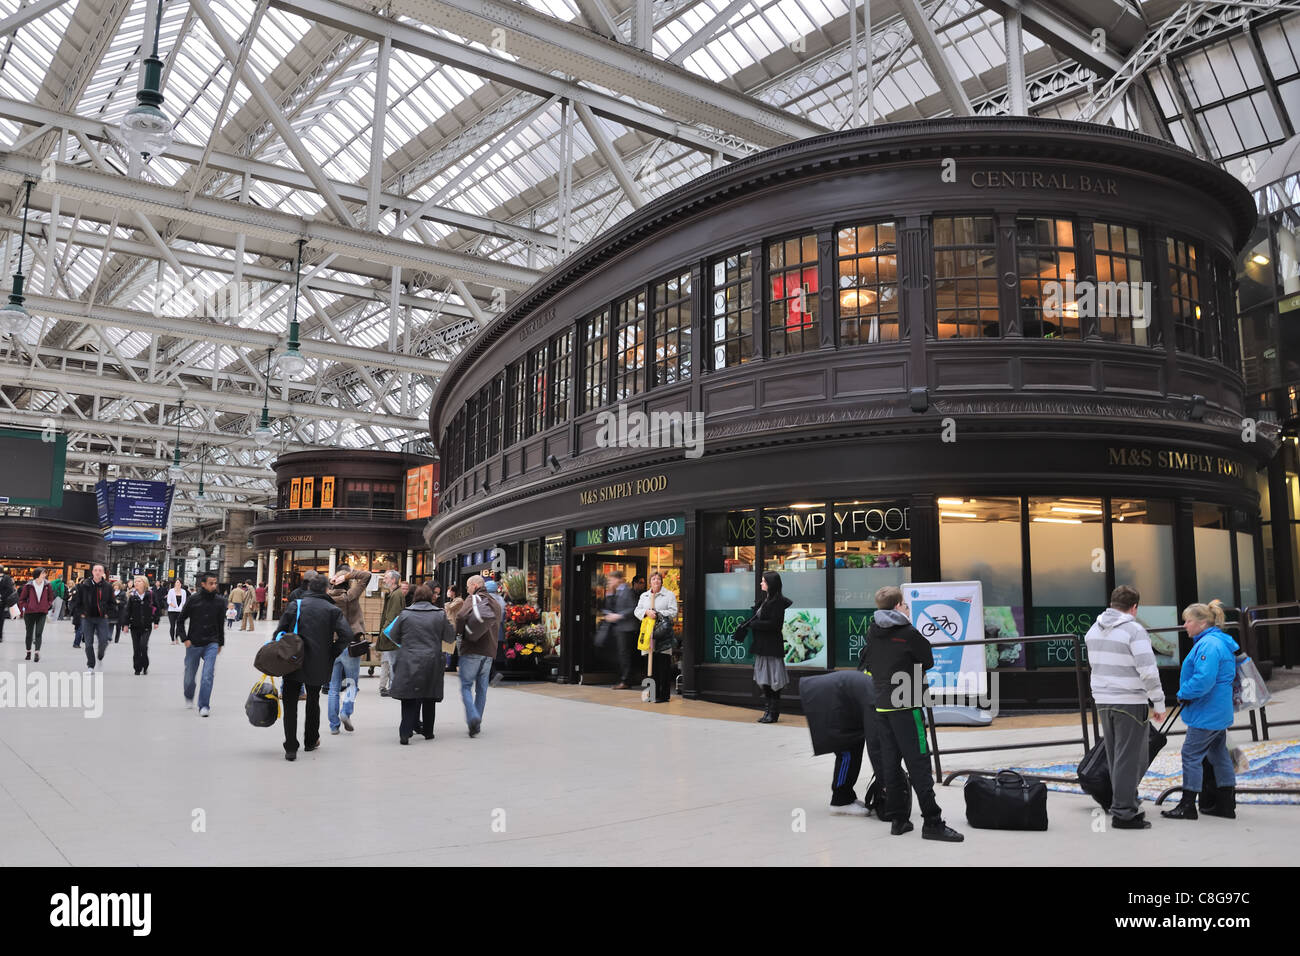 View of the Central Station including people, M&S and the Central Bar - Stock Image